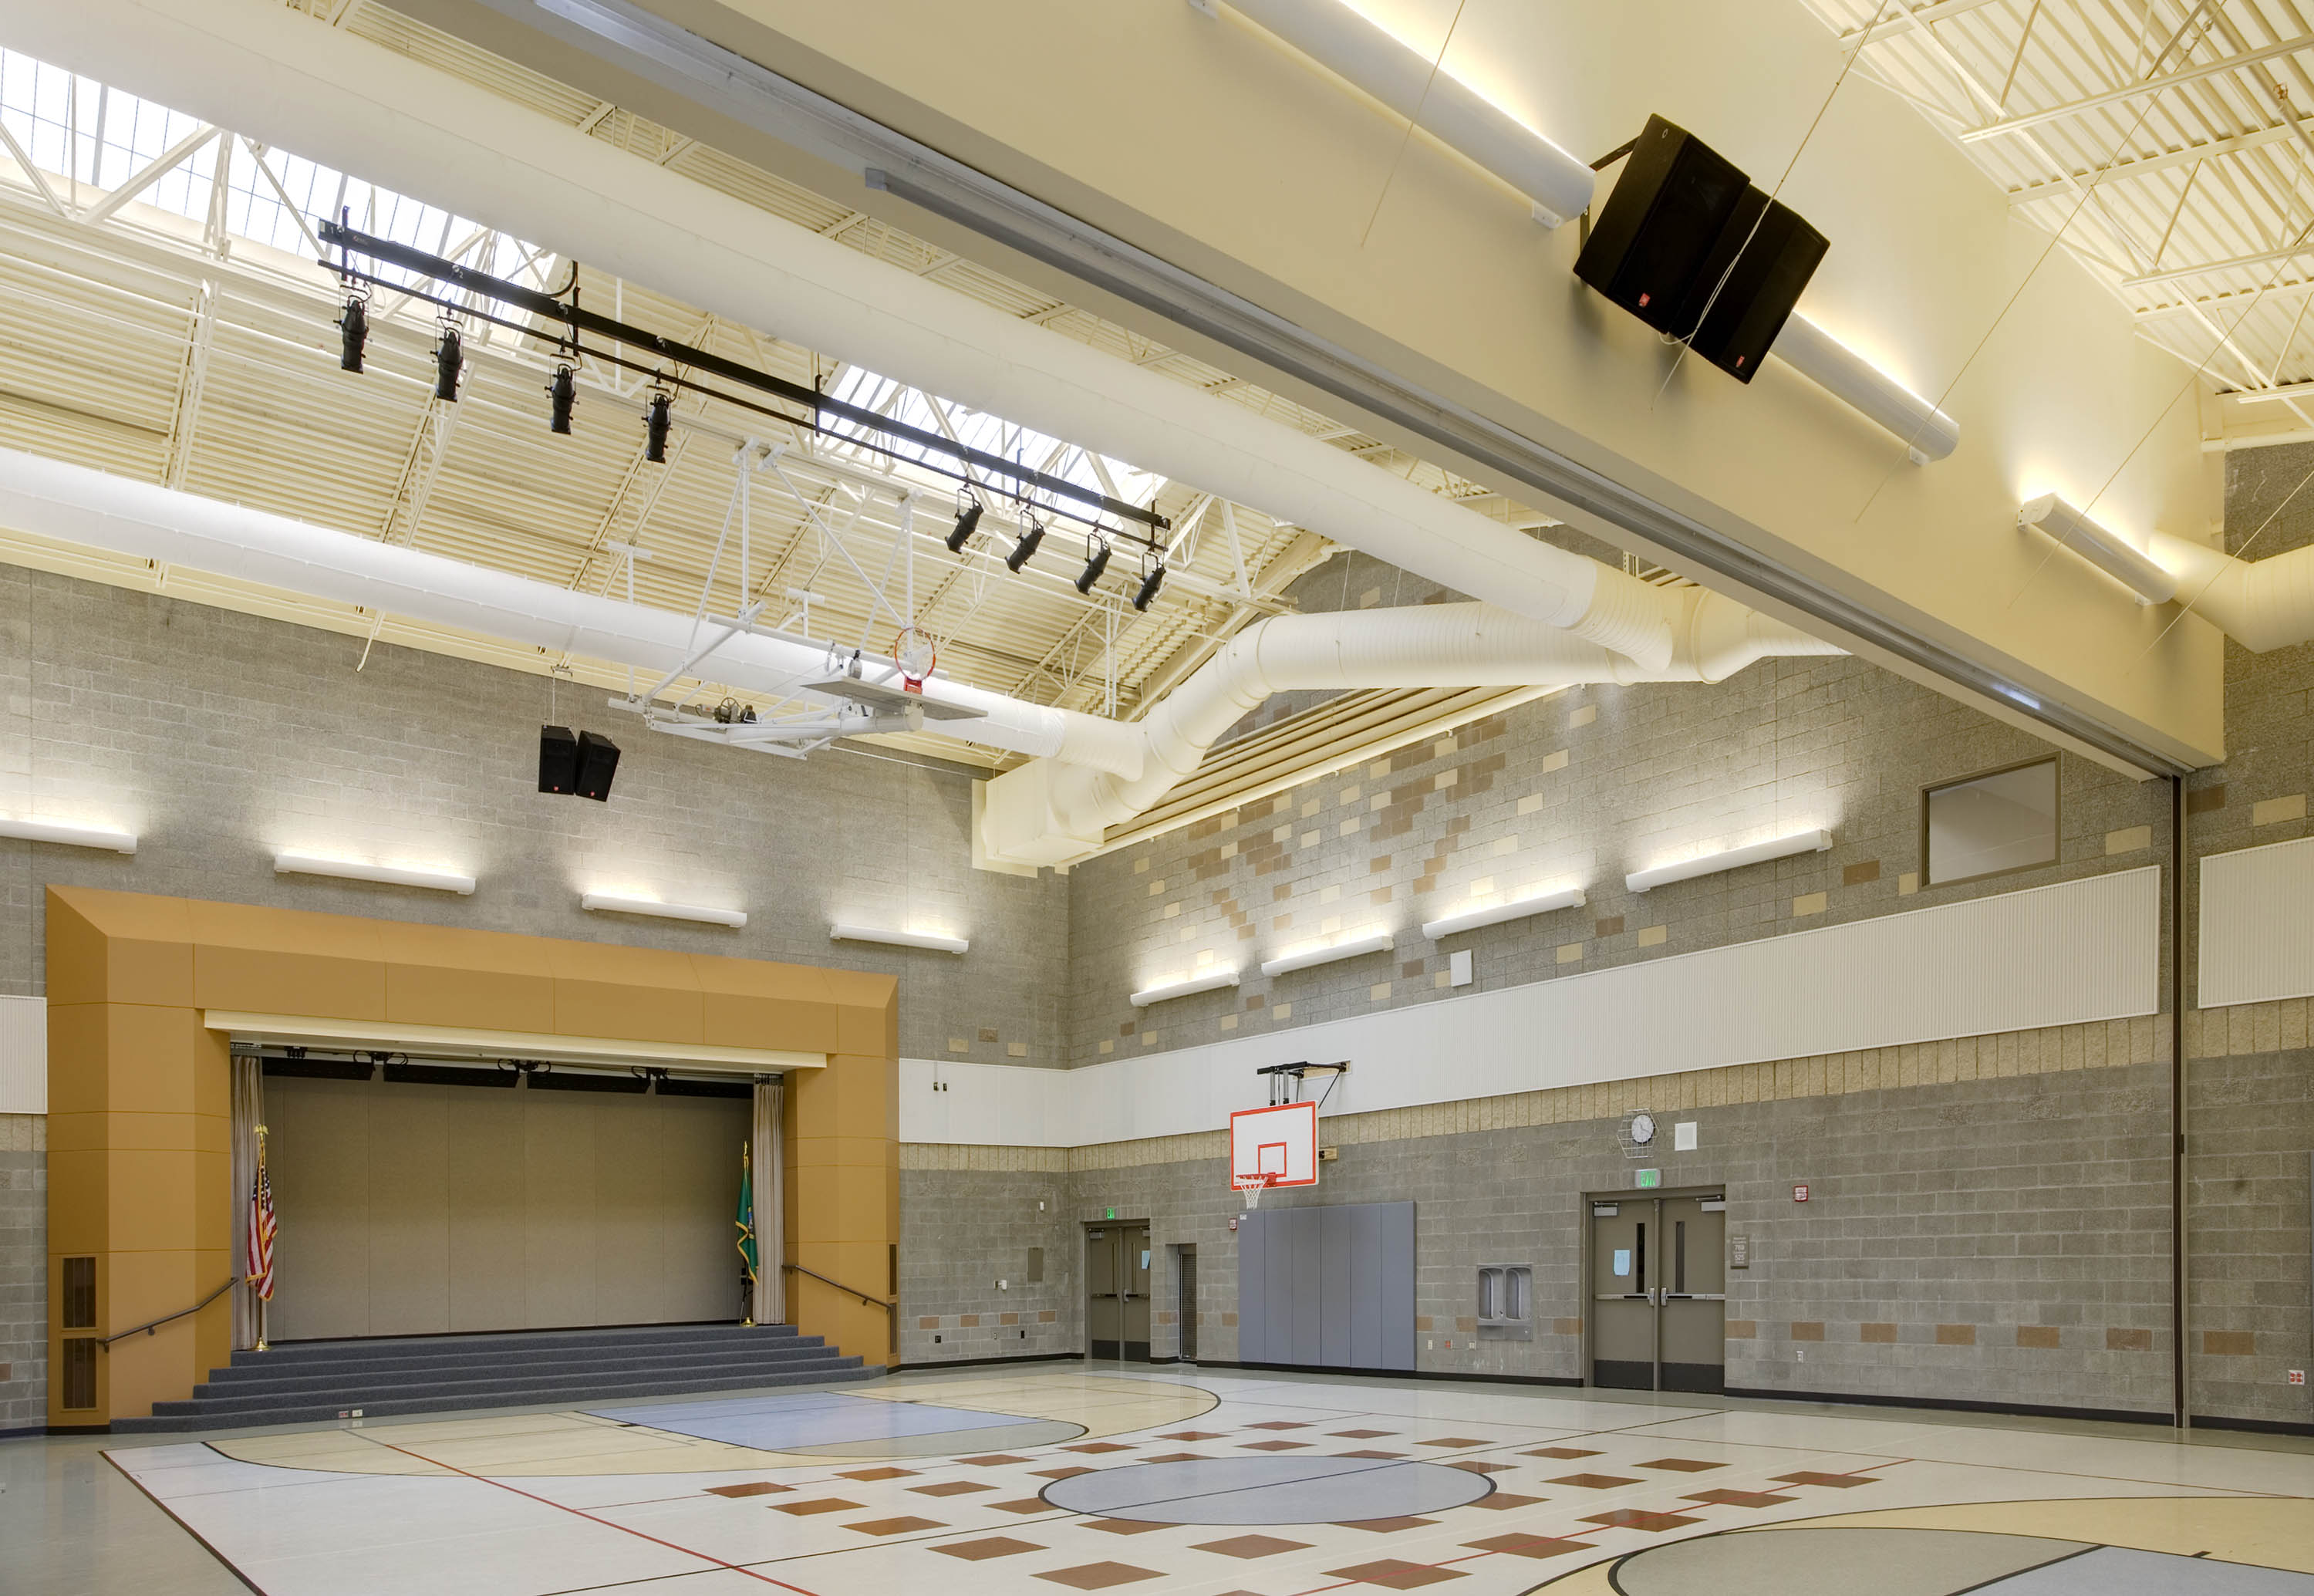 Multi use room with a stage and a basketball court.